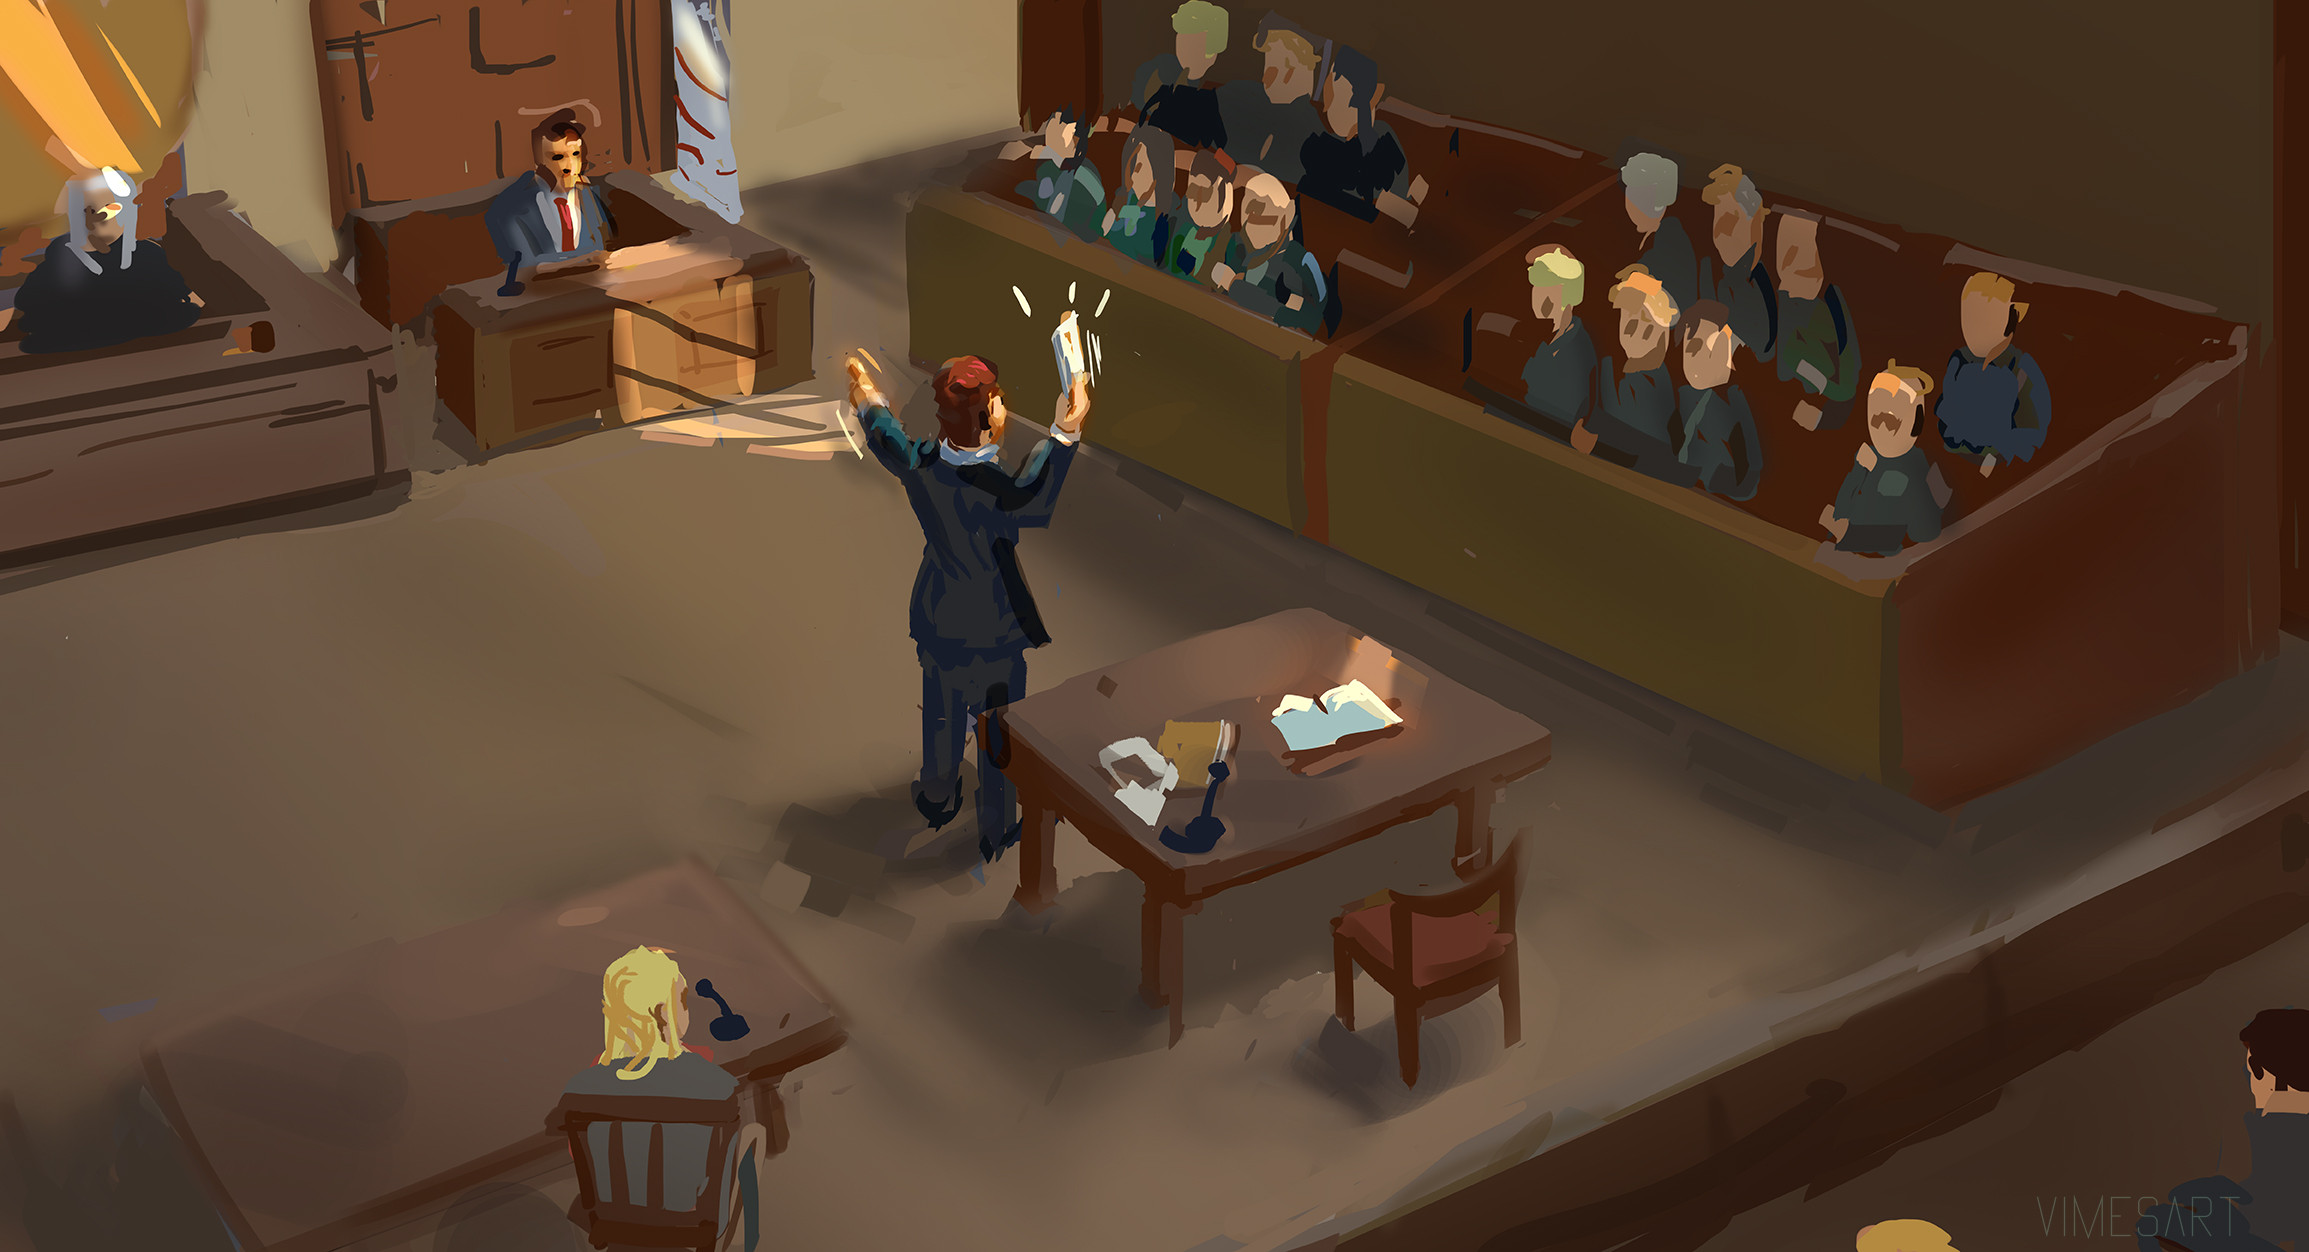 """""""Ladies and gentleman of the jury, the truth is we can not say for sure what happened. Even with all the witnesses and evidence laid out before you, at least some amount of doubt must still remain?"""""""